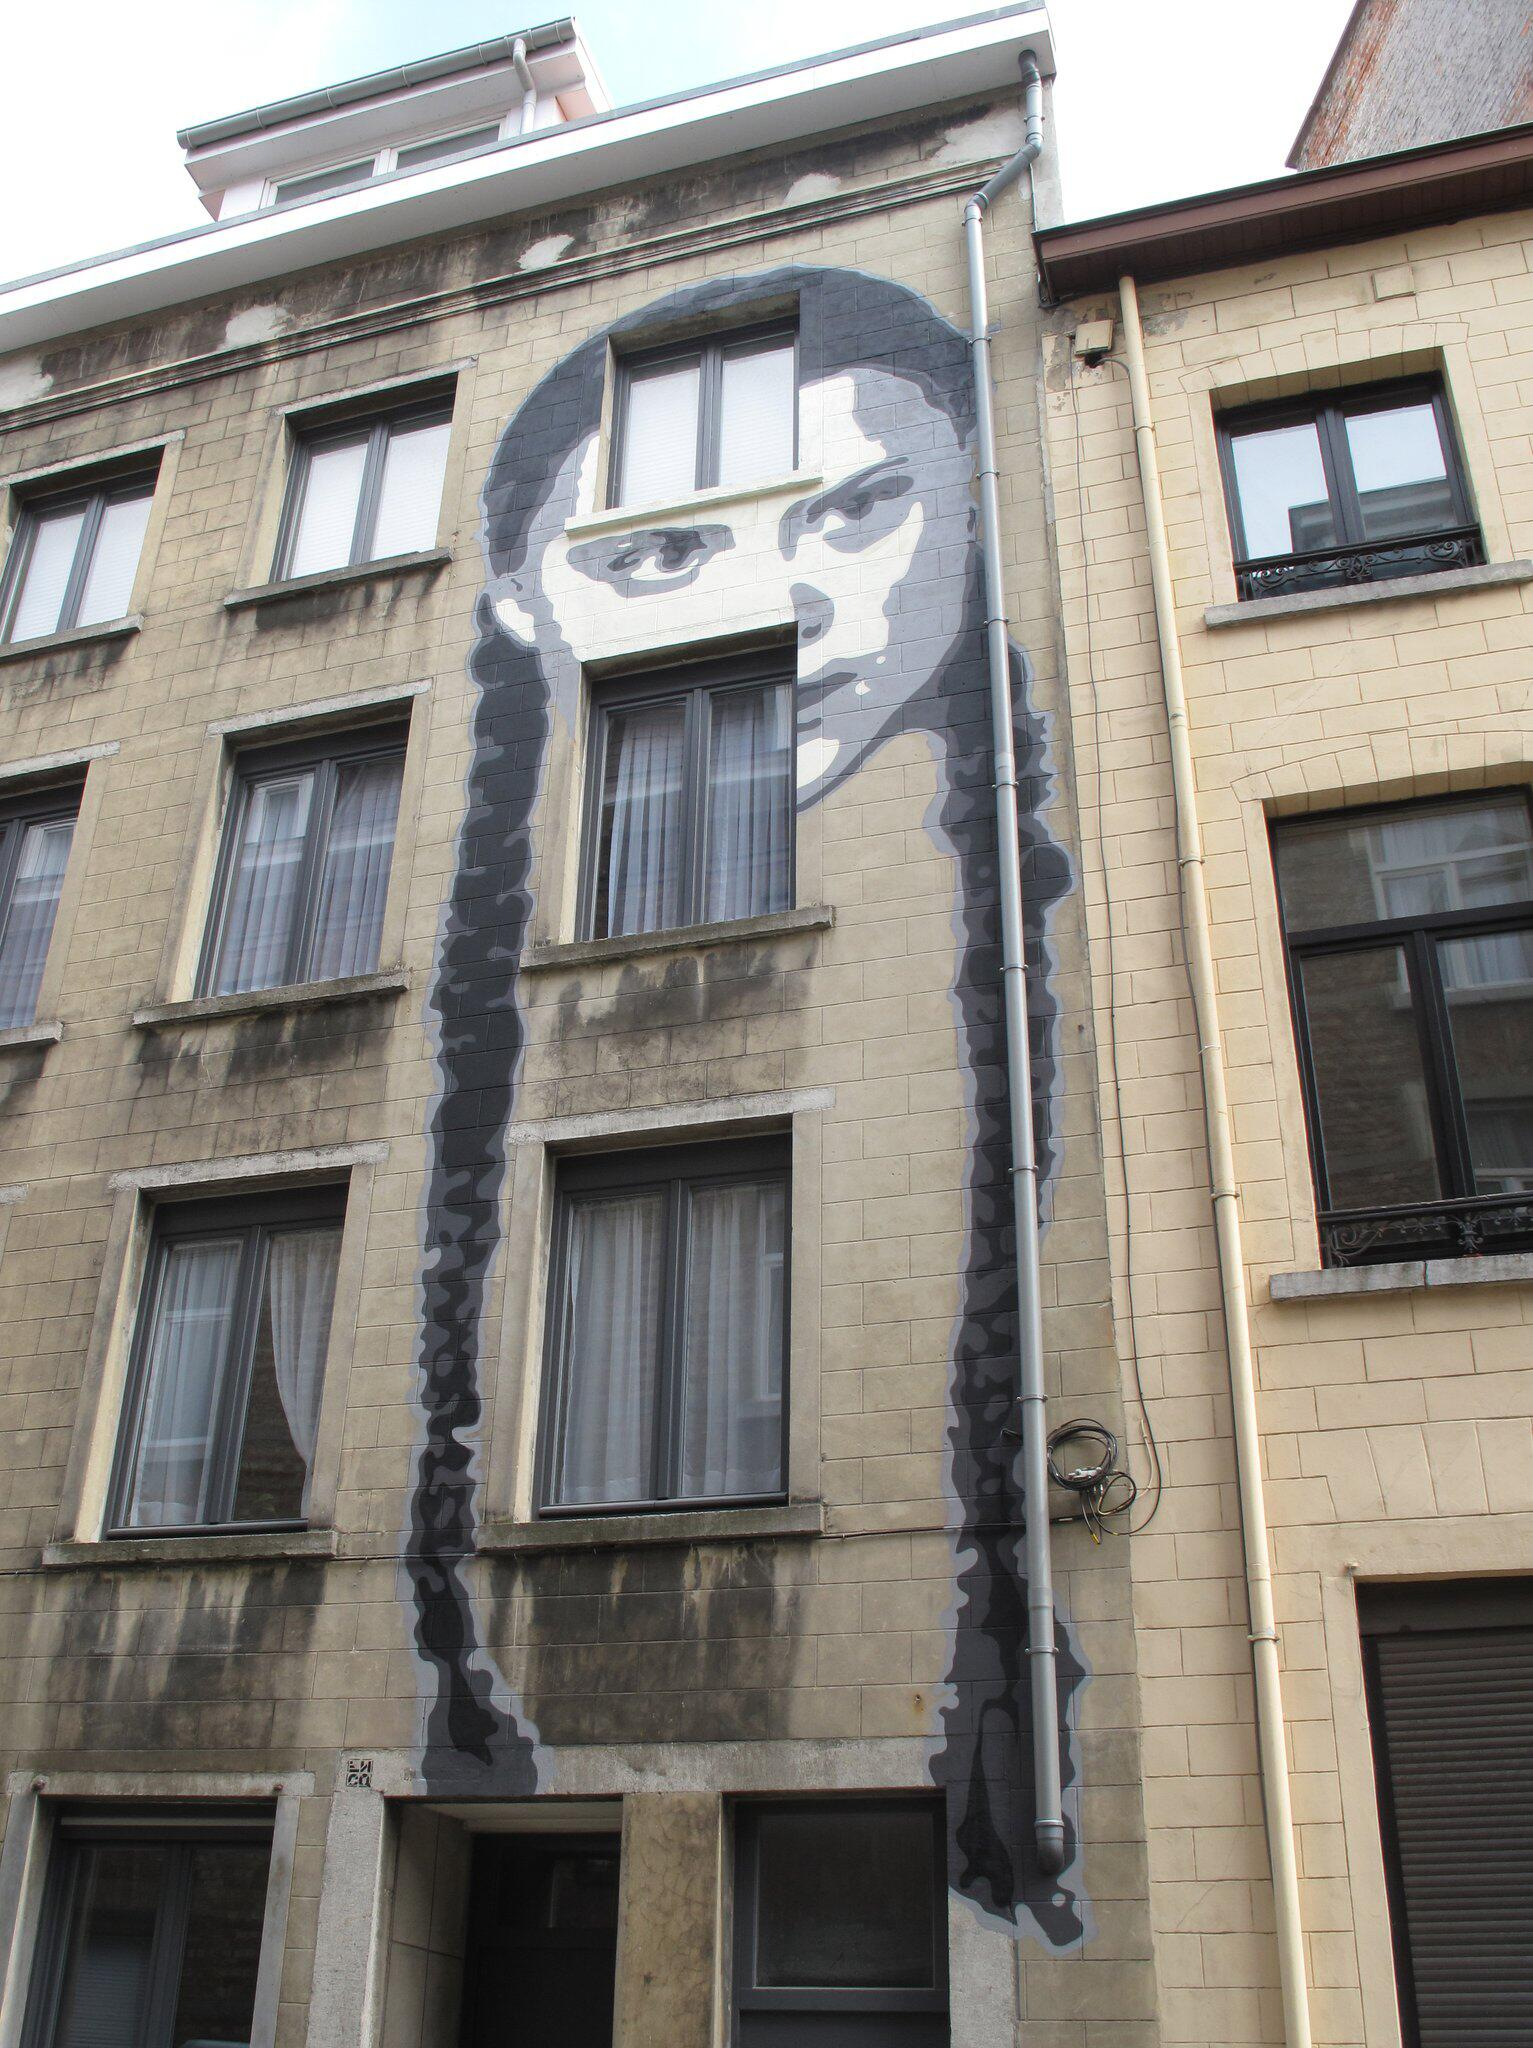 Bild zu Greta Thunberg Graffiti in Brussels